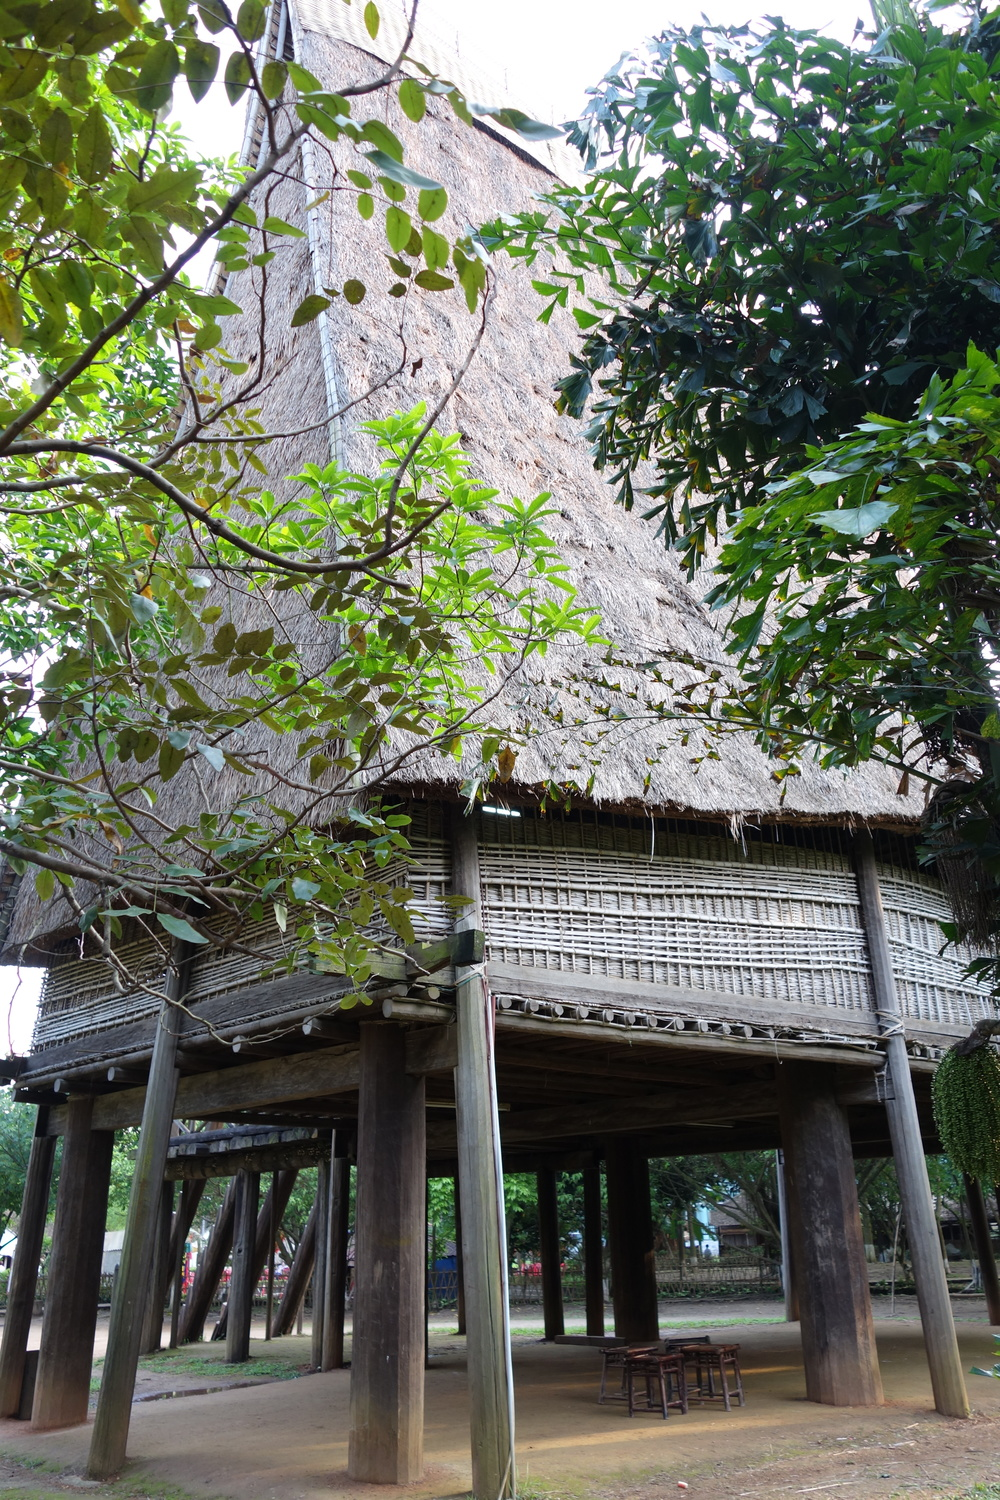 the ethnic group house no.1 / 民族の住宅その1